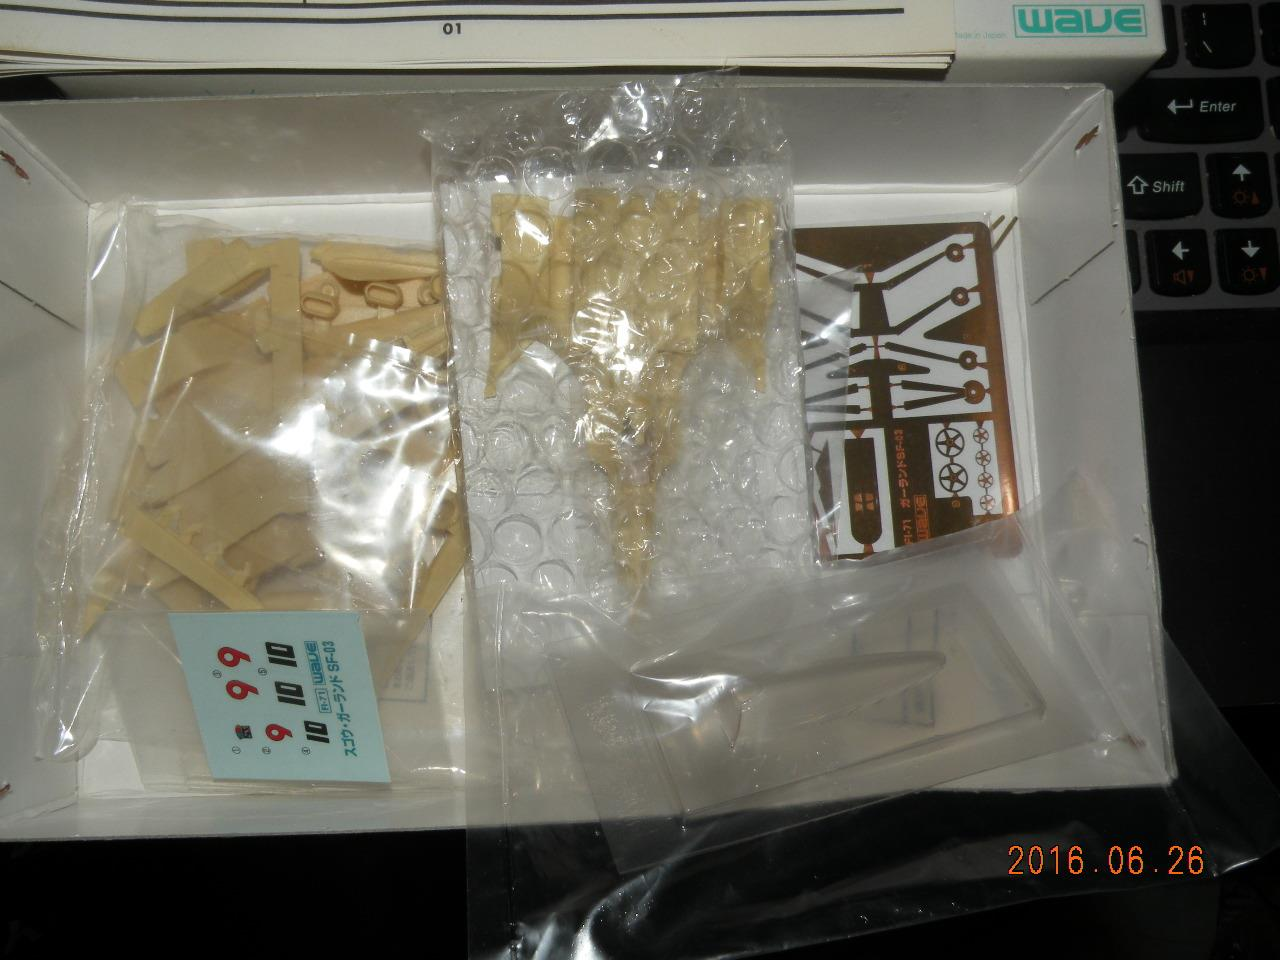 1//43 GPX Cyber Formula SUGO Garland Unpainted Resin Kit Details about  / B/_753 free shipping